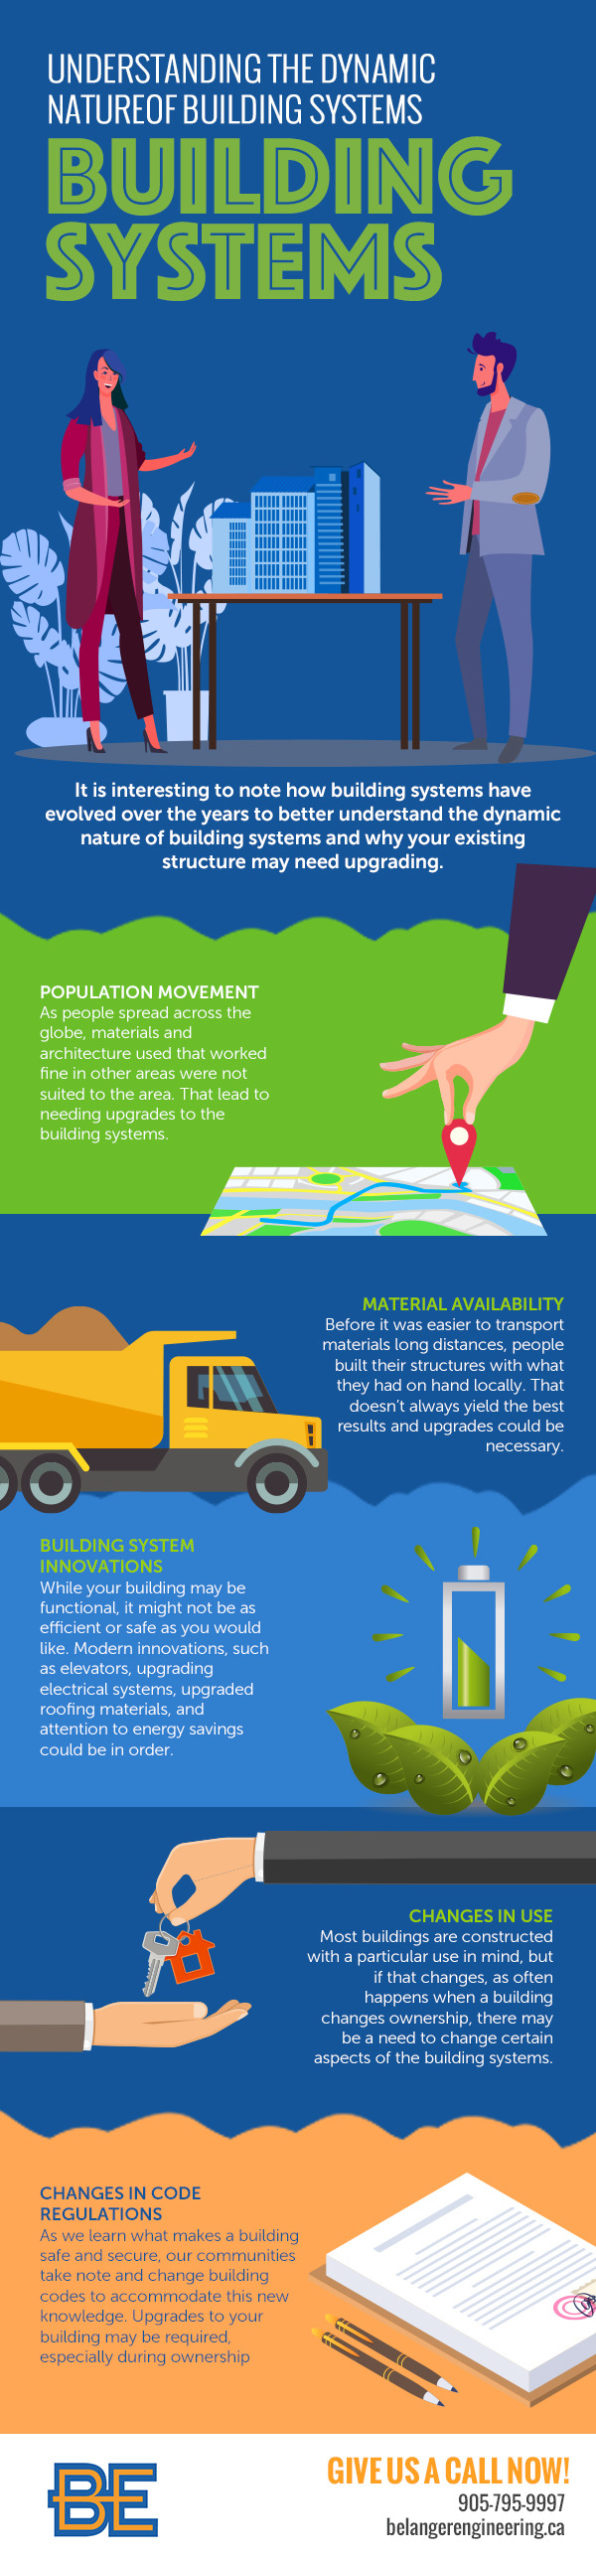 Understanding the Dynamic Nature of Building Systems [infographic]